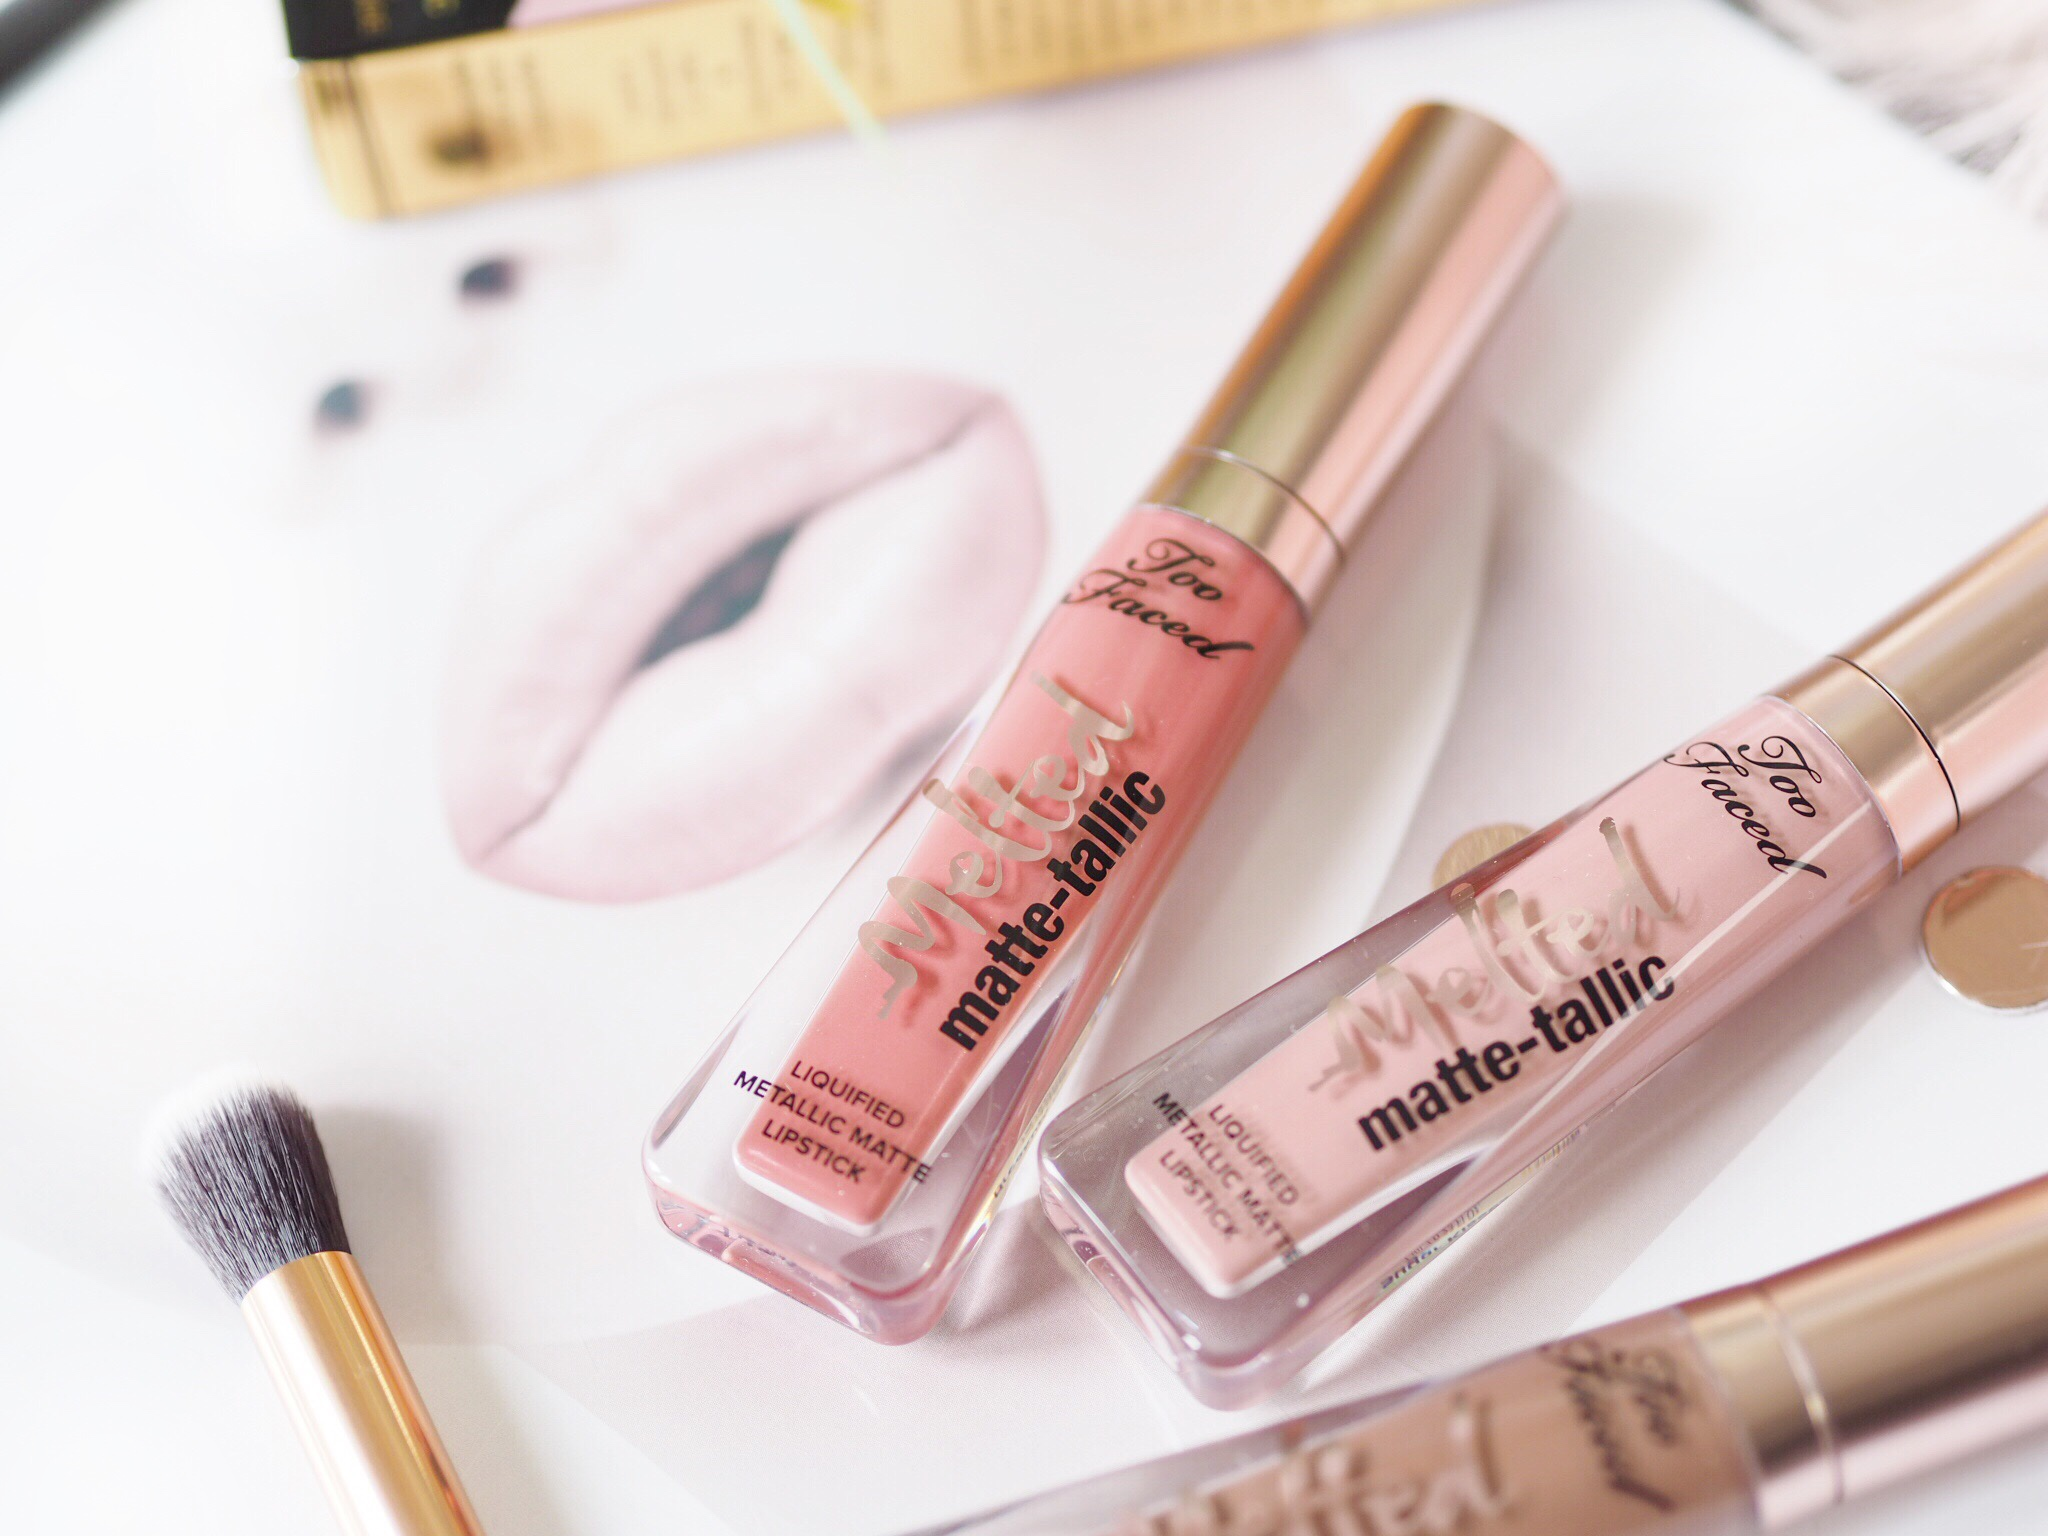 Too Faced Melted Matte-Talic Lipsticks